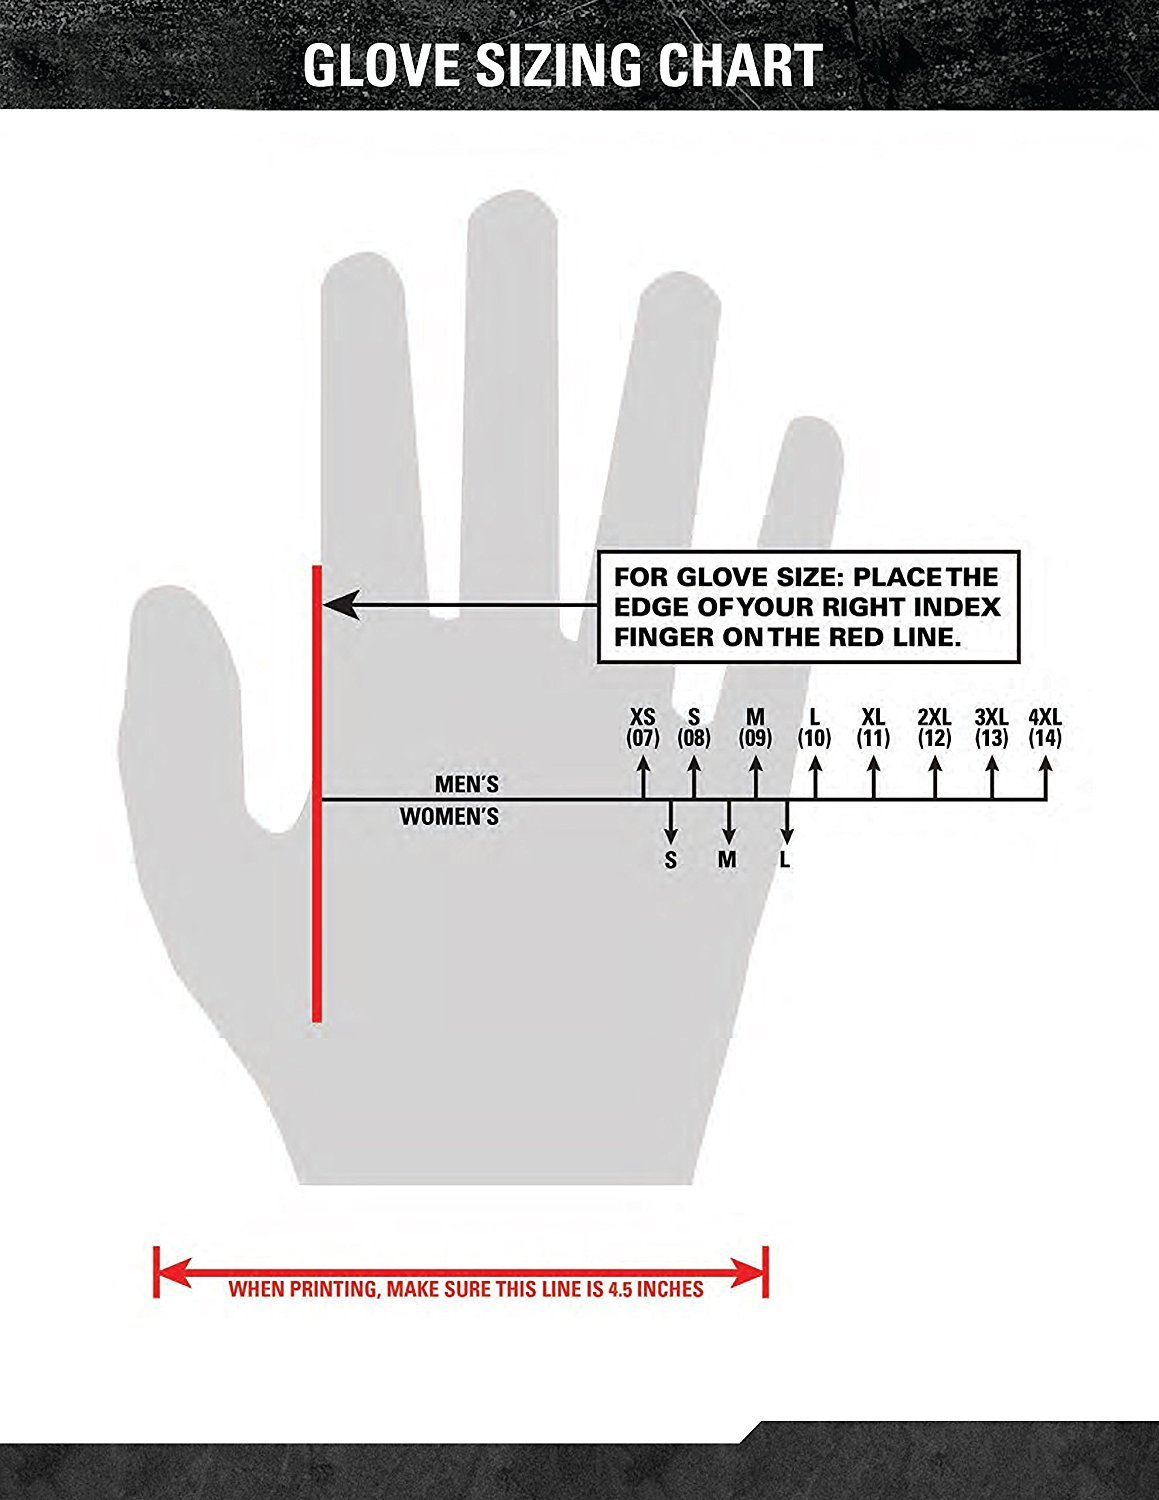 Ringers Gloves R-327 Extrication Barrier1, Heavy Duty Extrication Gloves, X-Large by Ringers Gloves (Image #6)